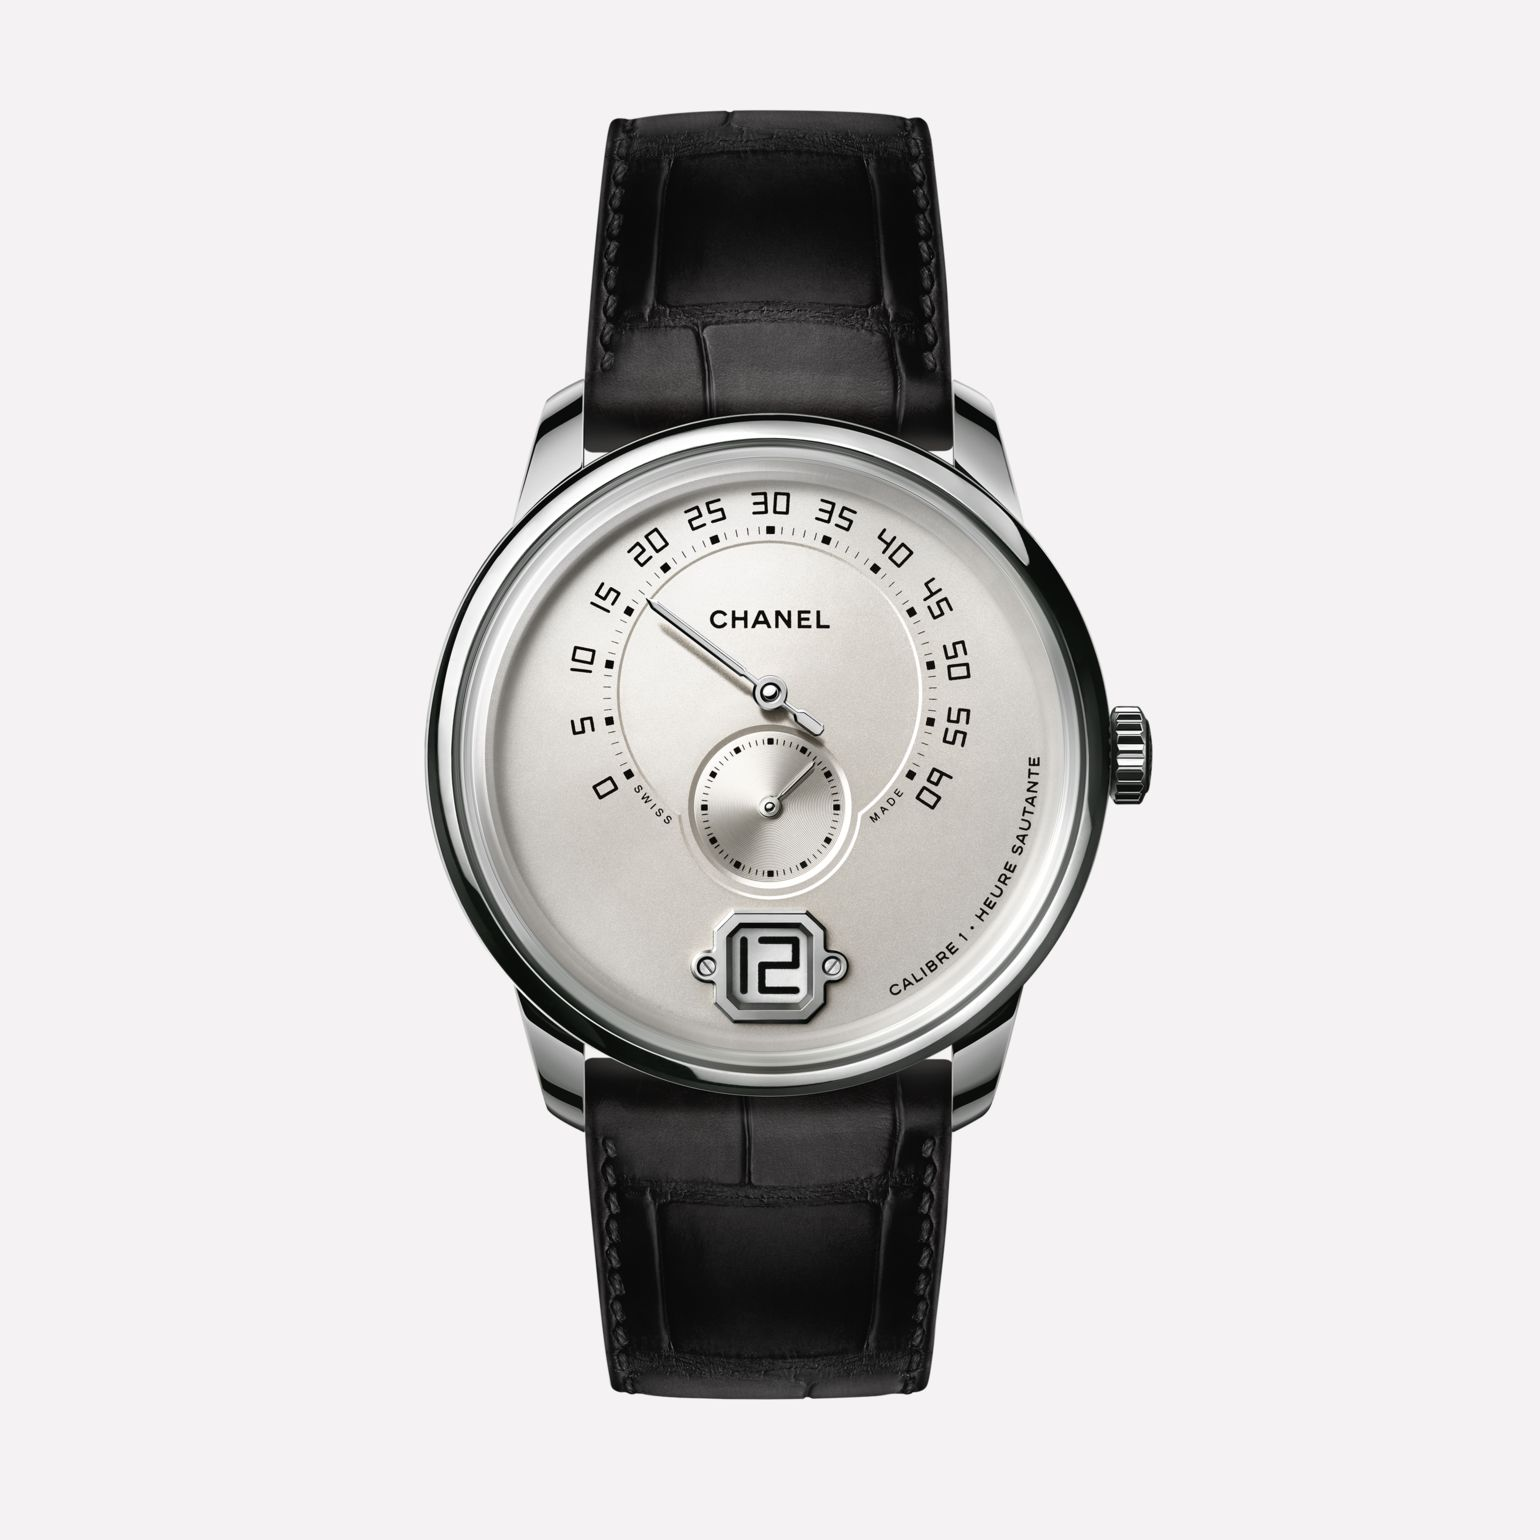 Monsieur Watch White gold opaline with jumping hour, 240° retrograde minute and small second counter